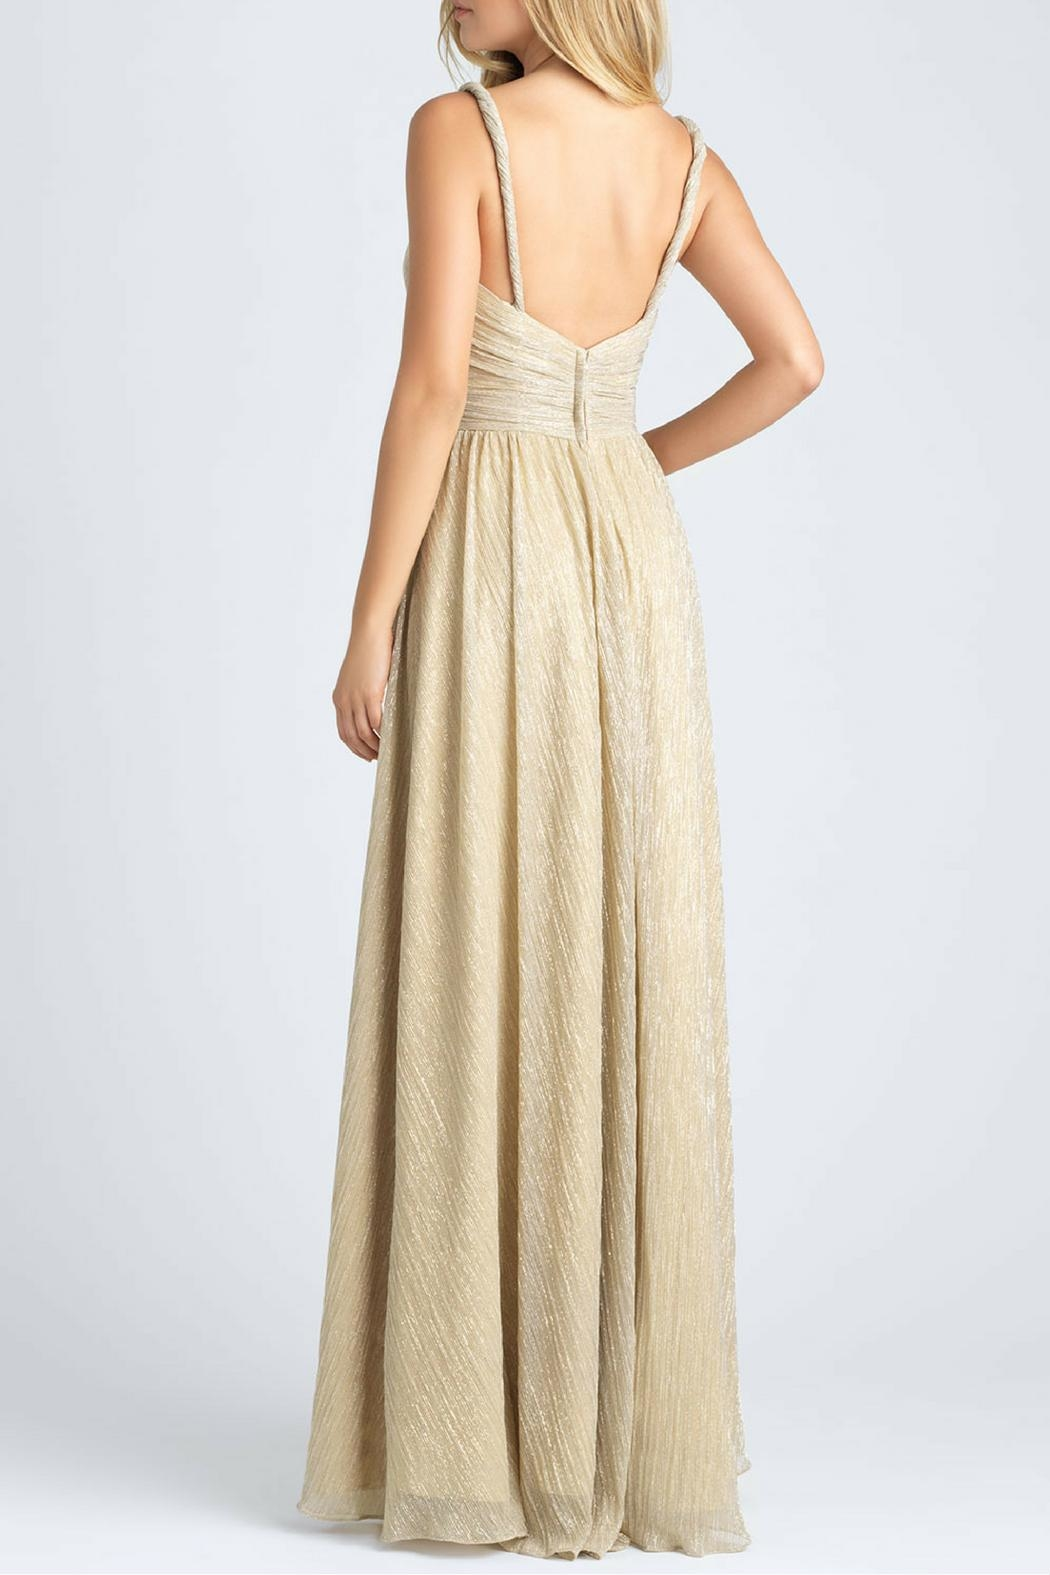 Allure Bridals Shimmer Bridesmaid Gown - Front Full Image